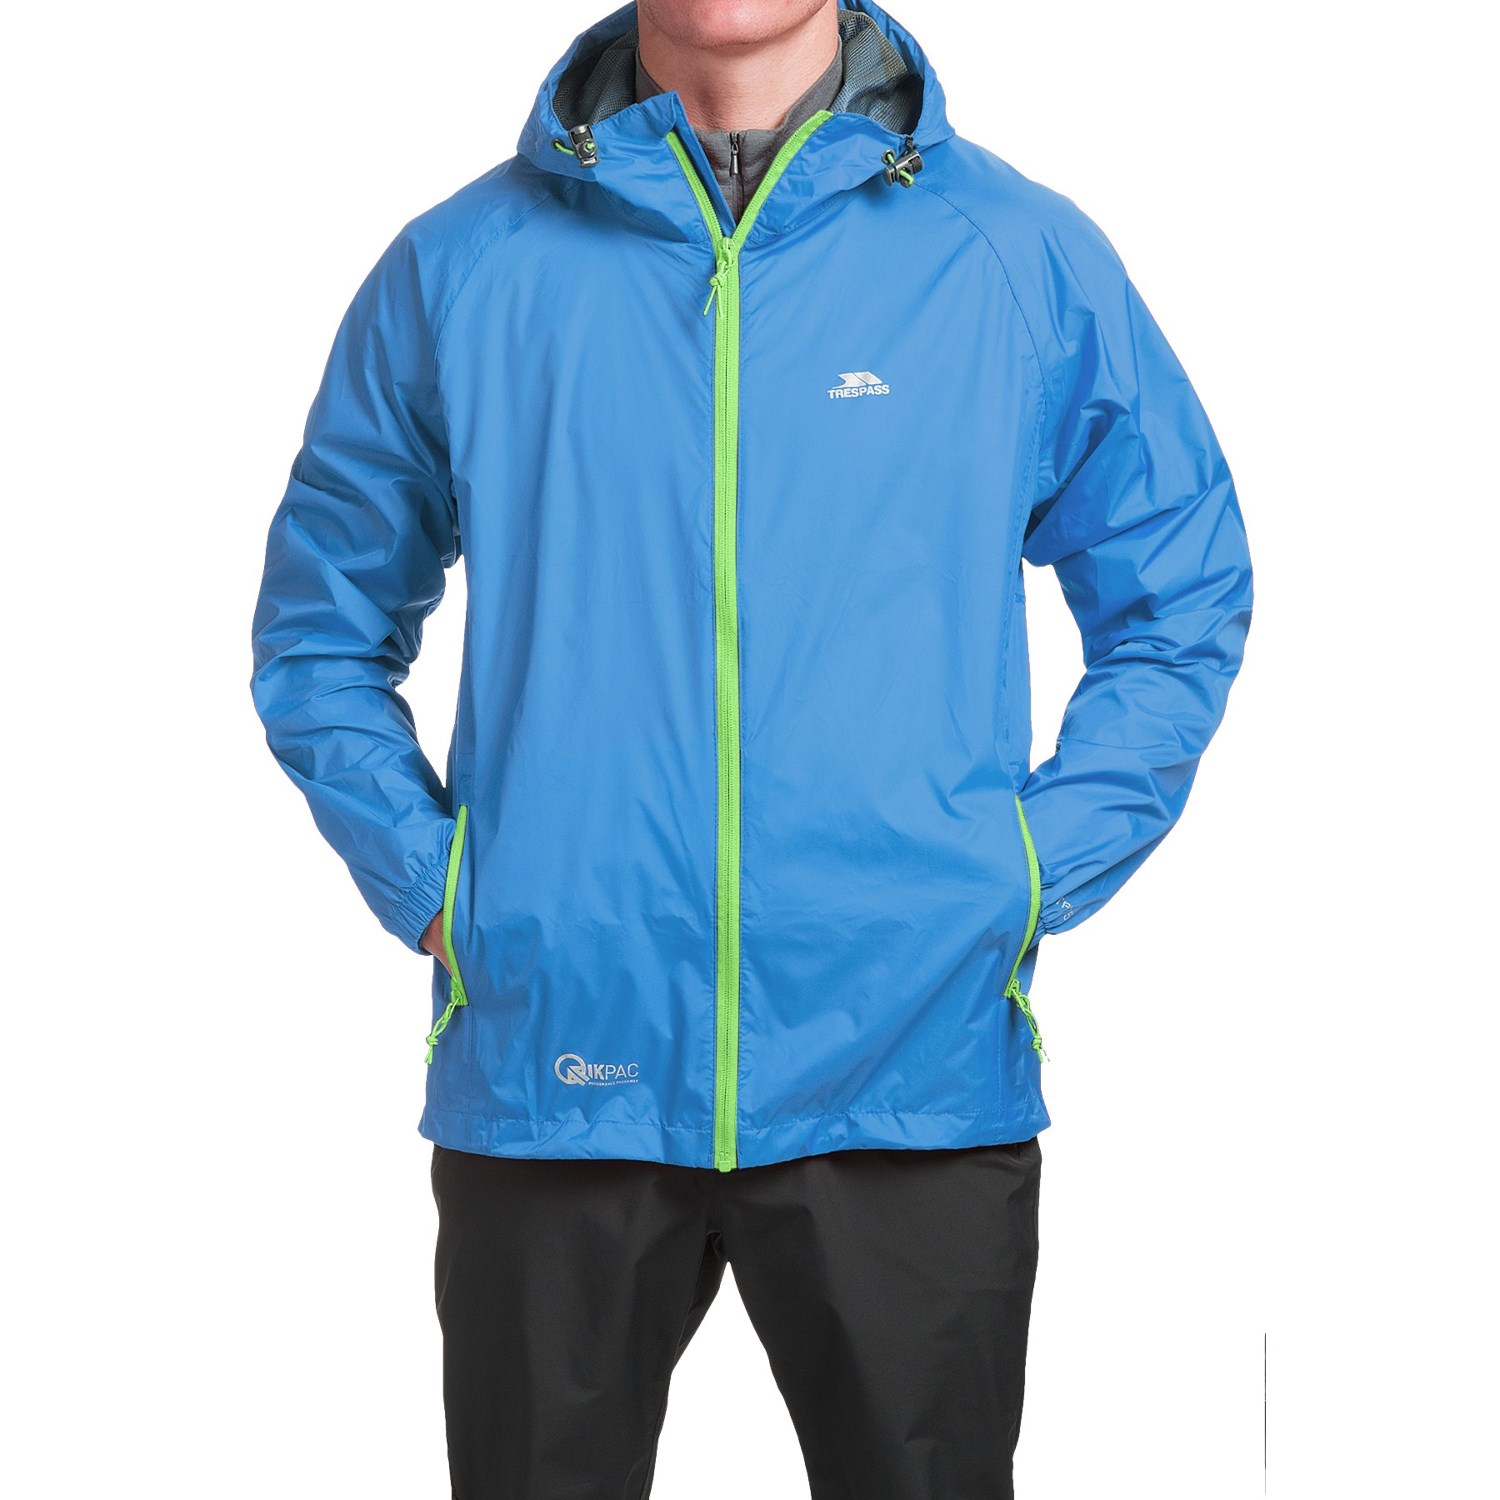 Trespass Qikpac Jacket (For Men and Women) - Save 64%